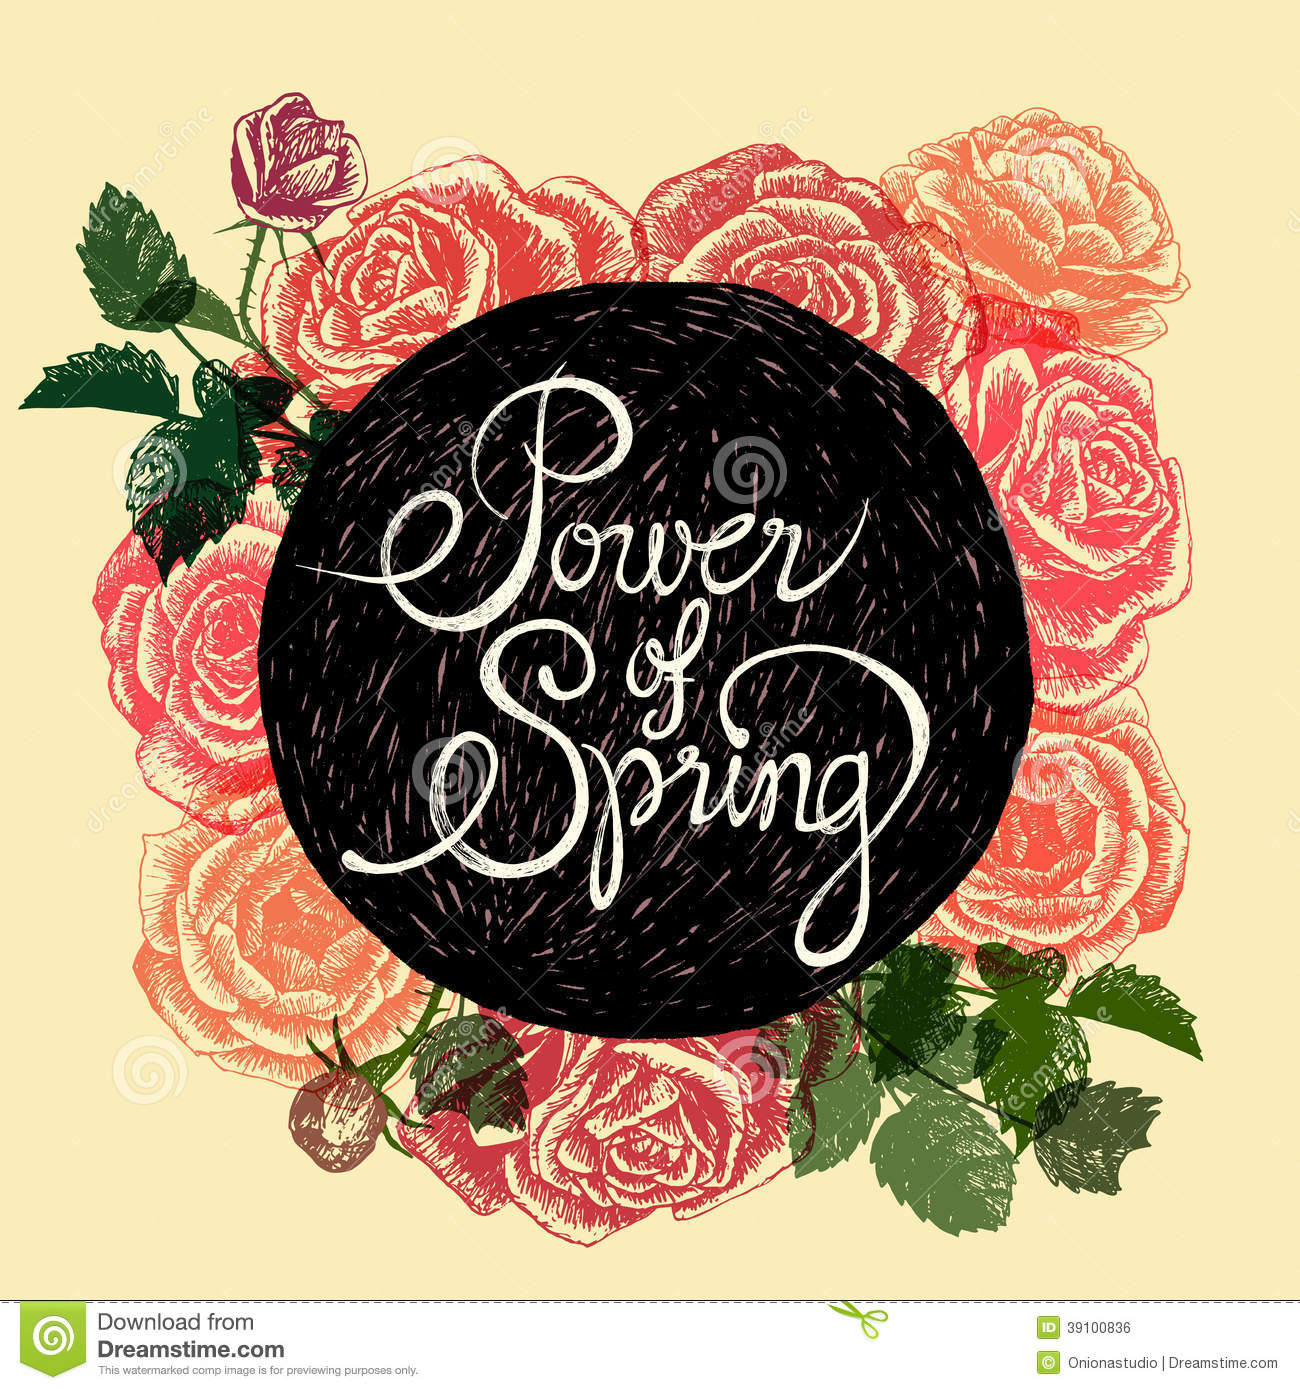 Power of spring flowers quote stock vector image